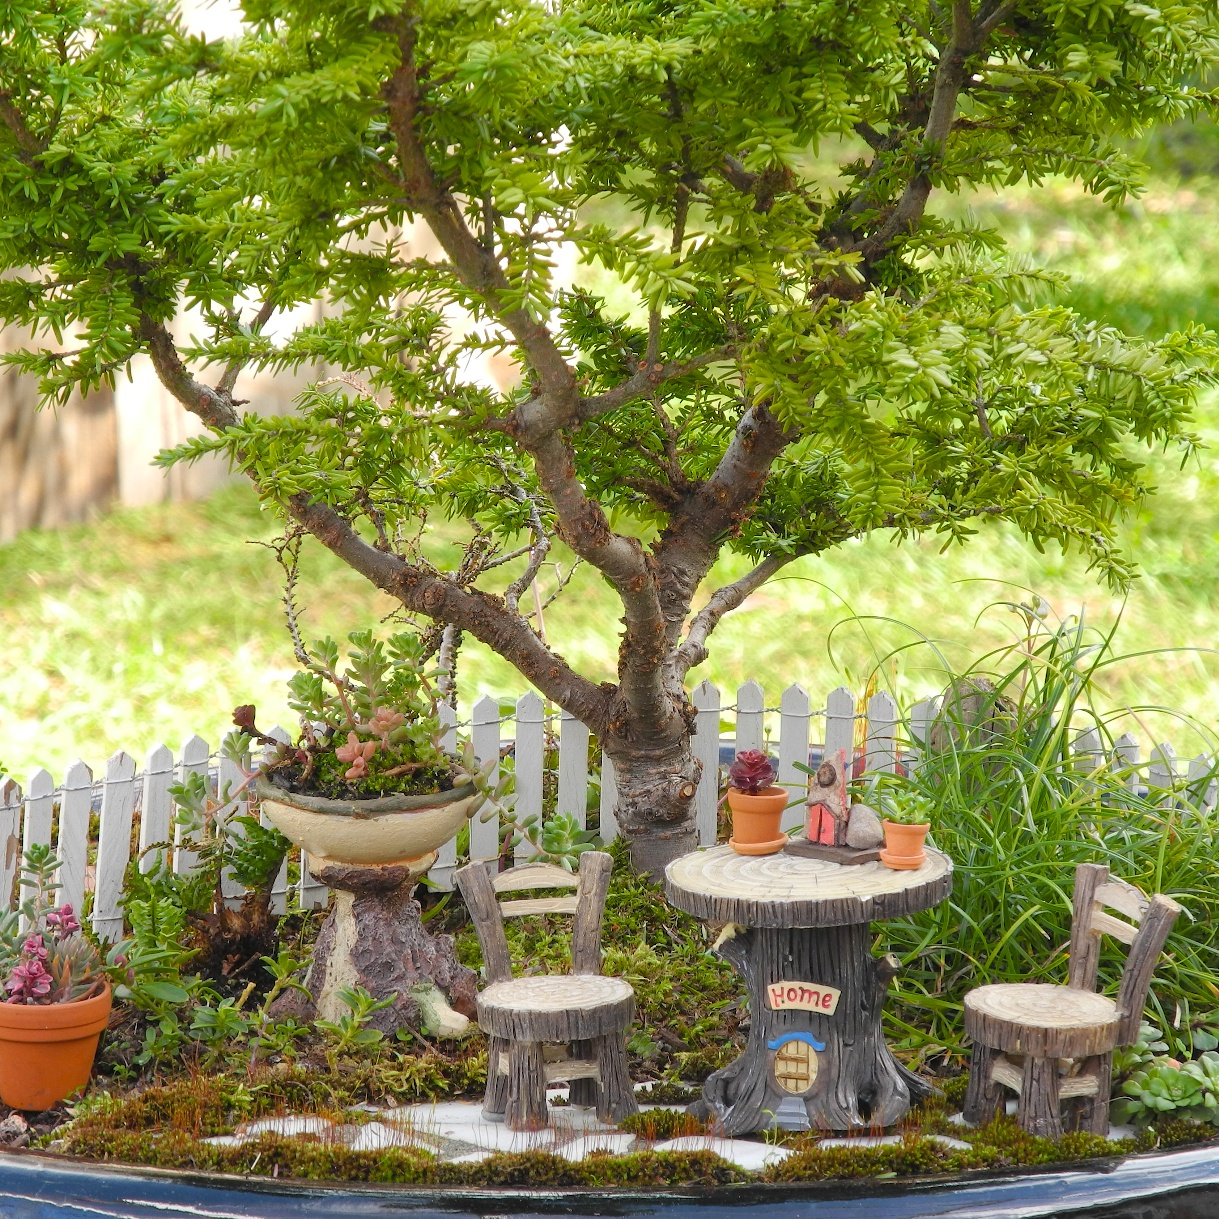 painted tiny moulding clay table, with matching chairs, made to look like made from wood, how to make a fairy garden, bonsai tree and moss